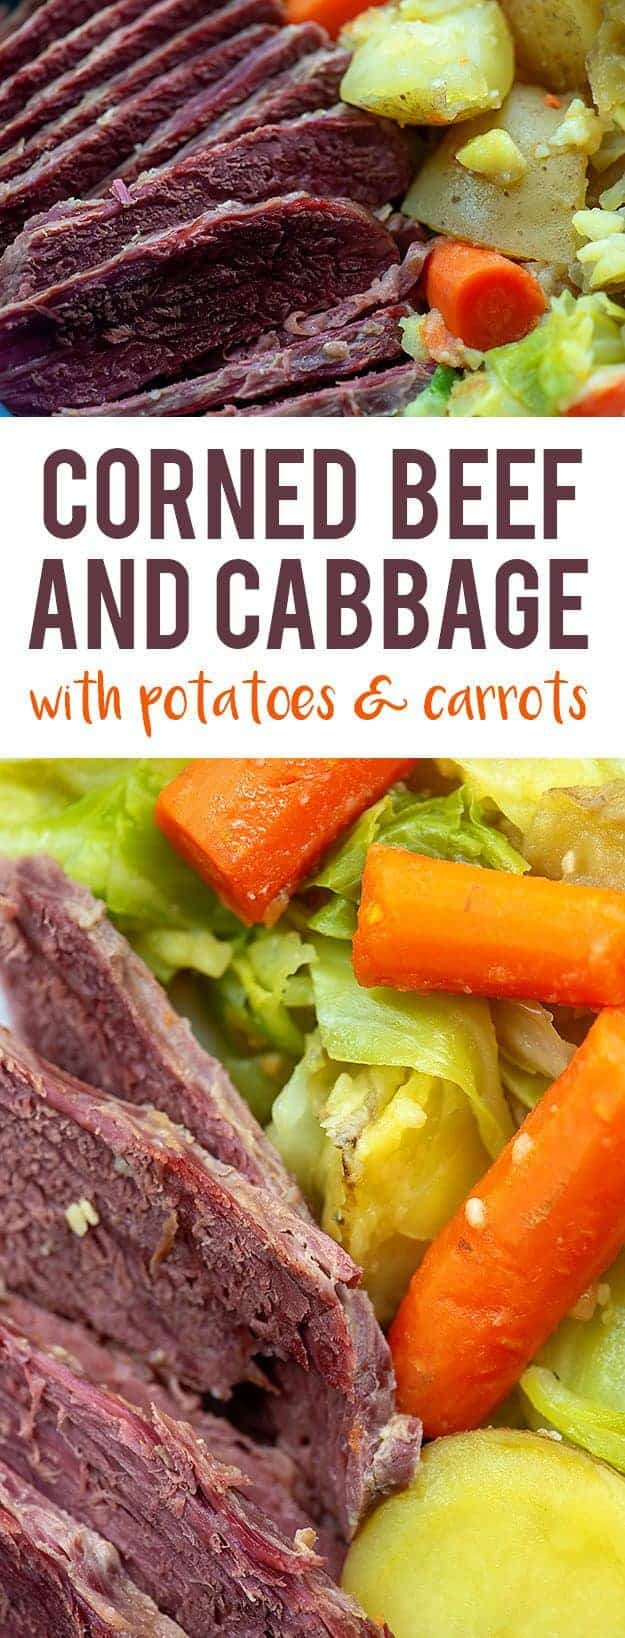 Corned Beef and Cabbage - cooked in beer with potatoes & carrots! #stpatricksday #irish #recipe